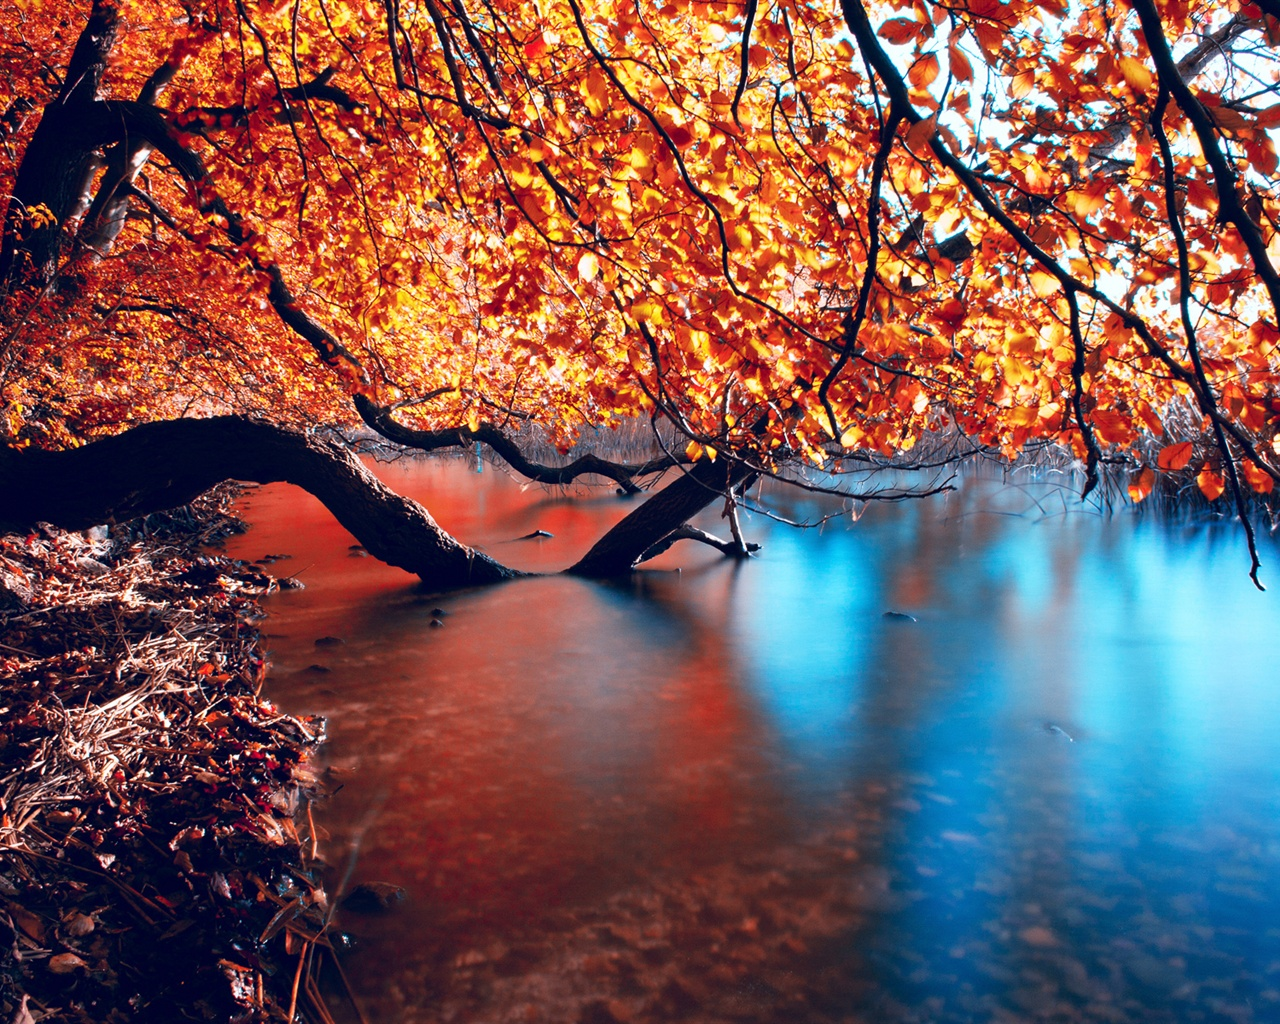 Fall Mountains Hd Wallpaper Pictures Wallpaper The Fall Of The Mangrove Forests And Tranquil